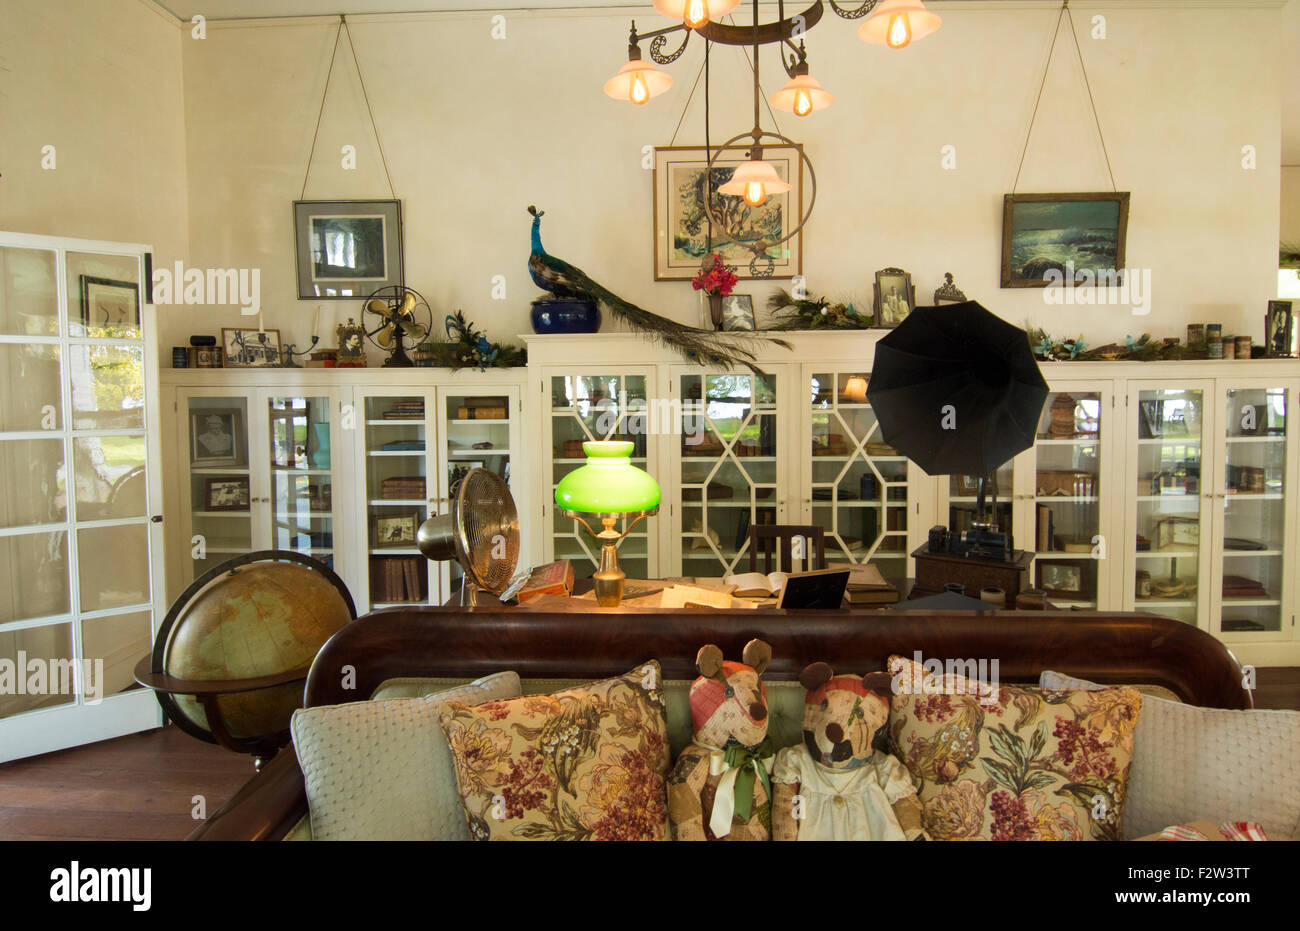 Thomas Edison inventor home and museum in Ft Myers Florida living room - Stock Image